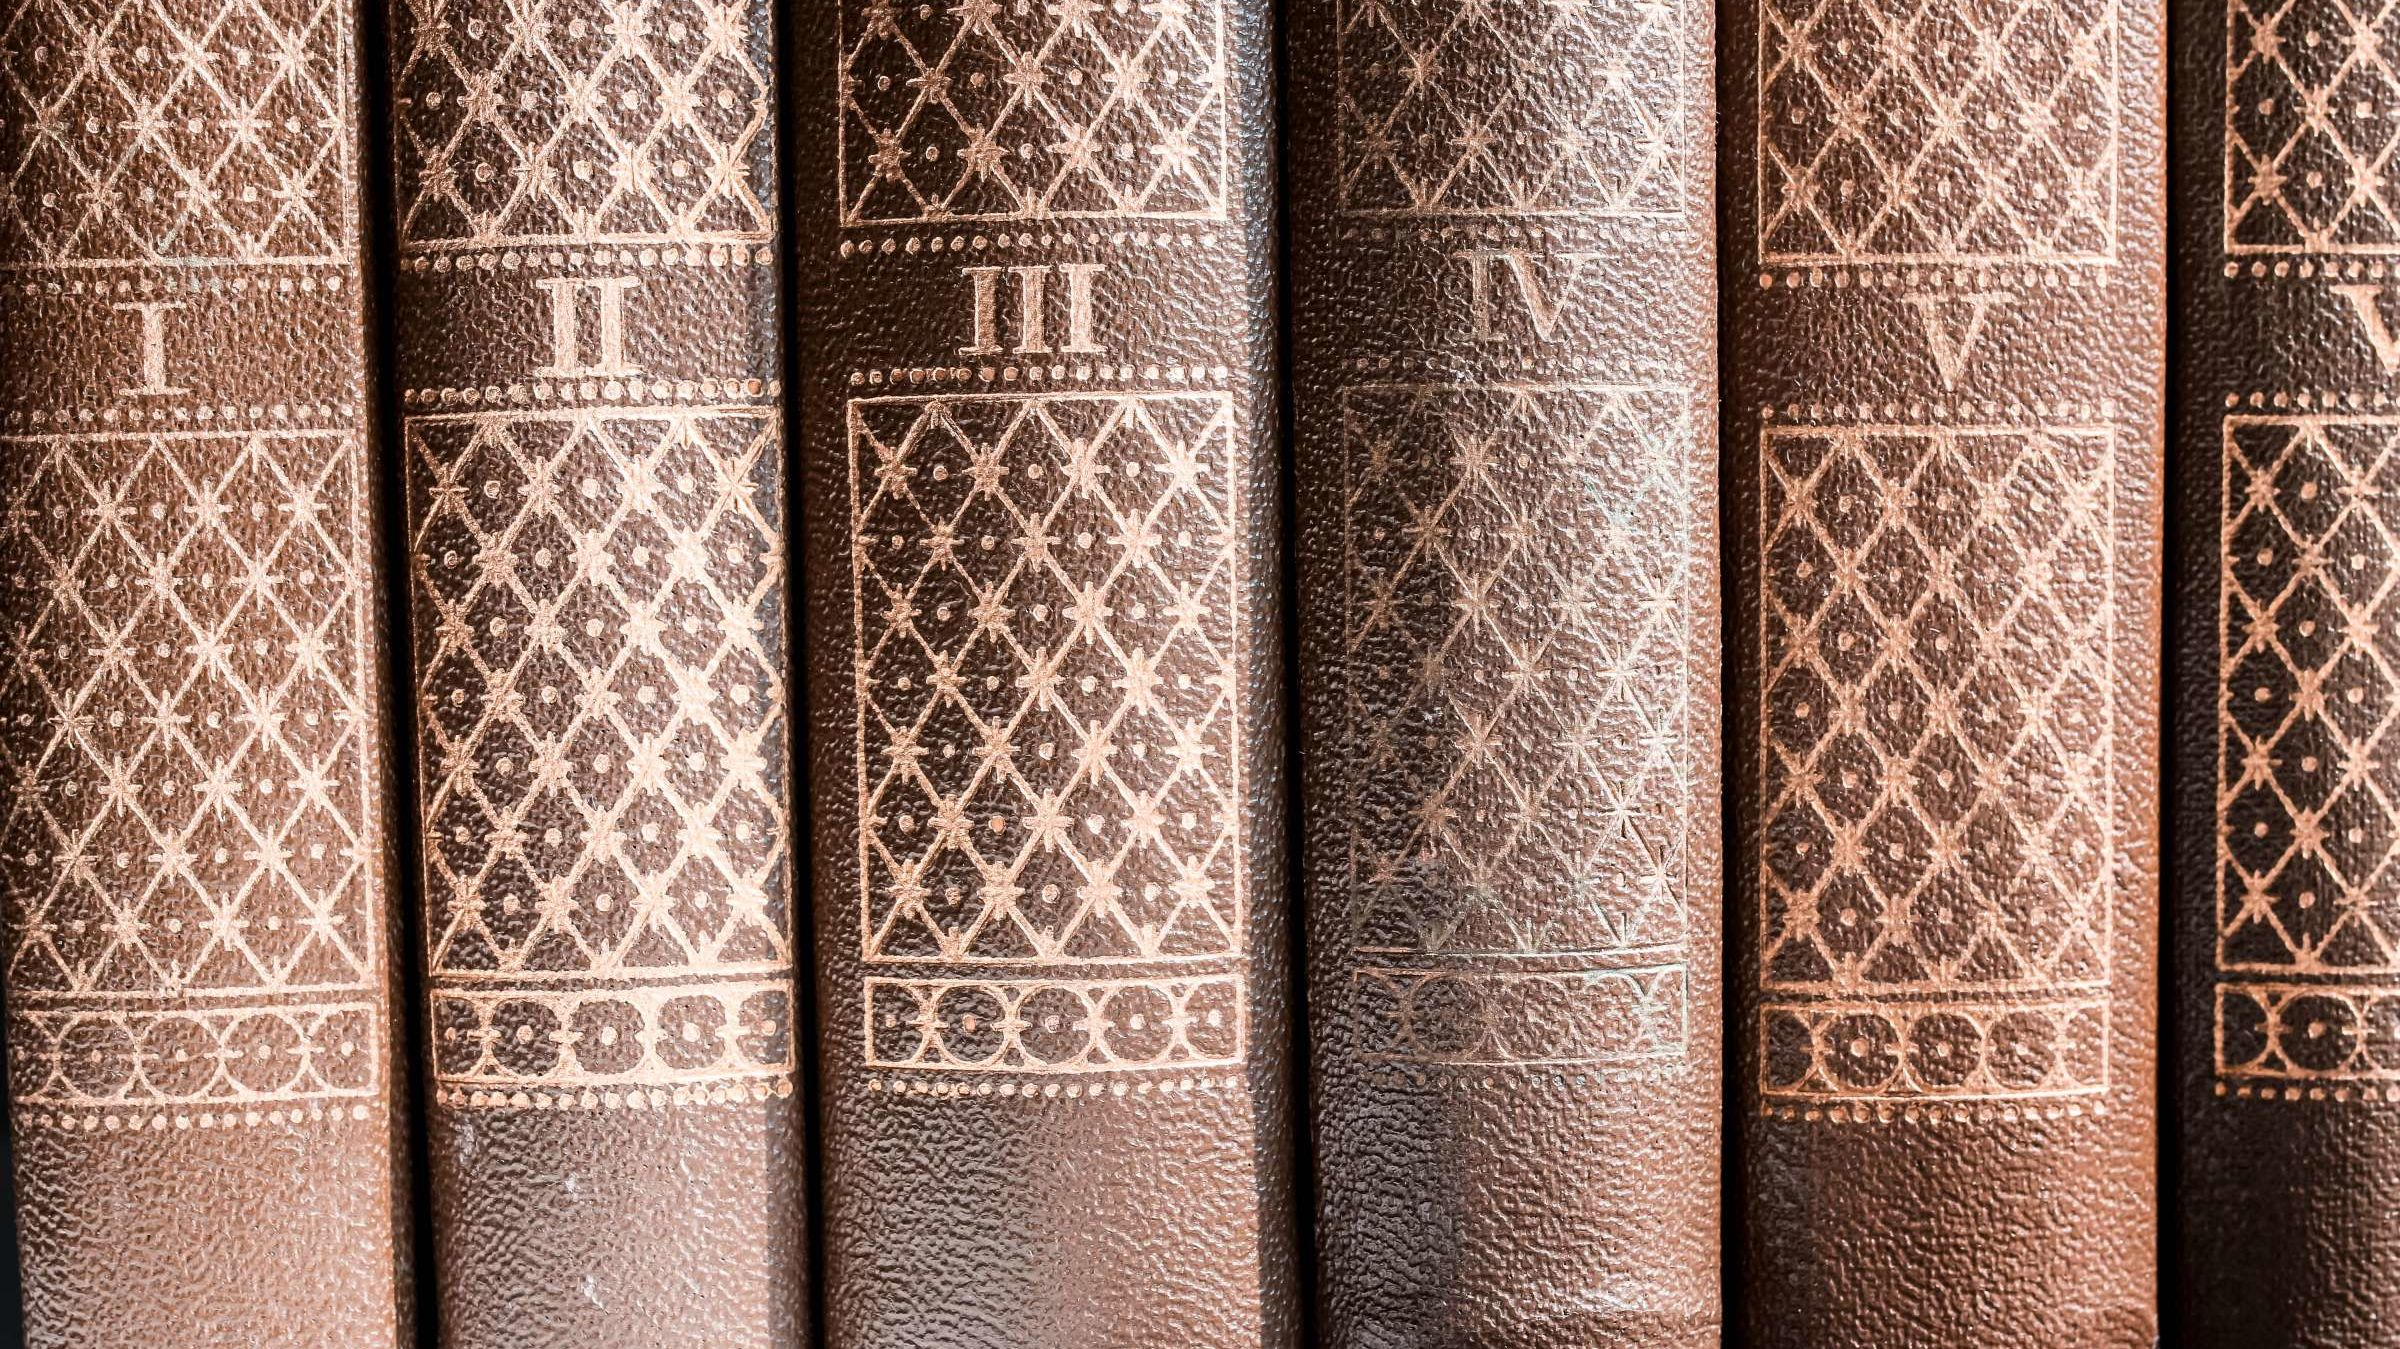 What's the Longest Novel Ever Published?